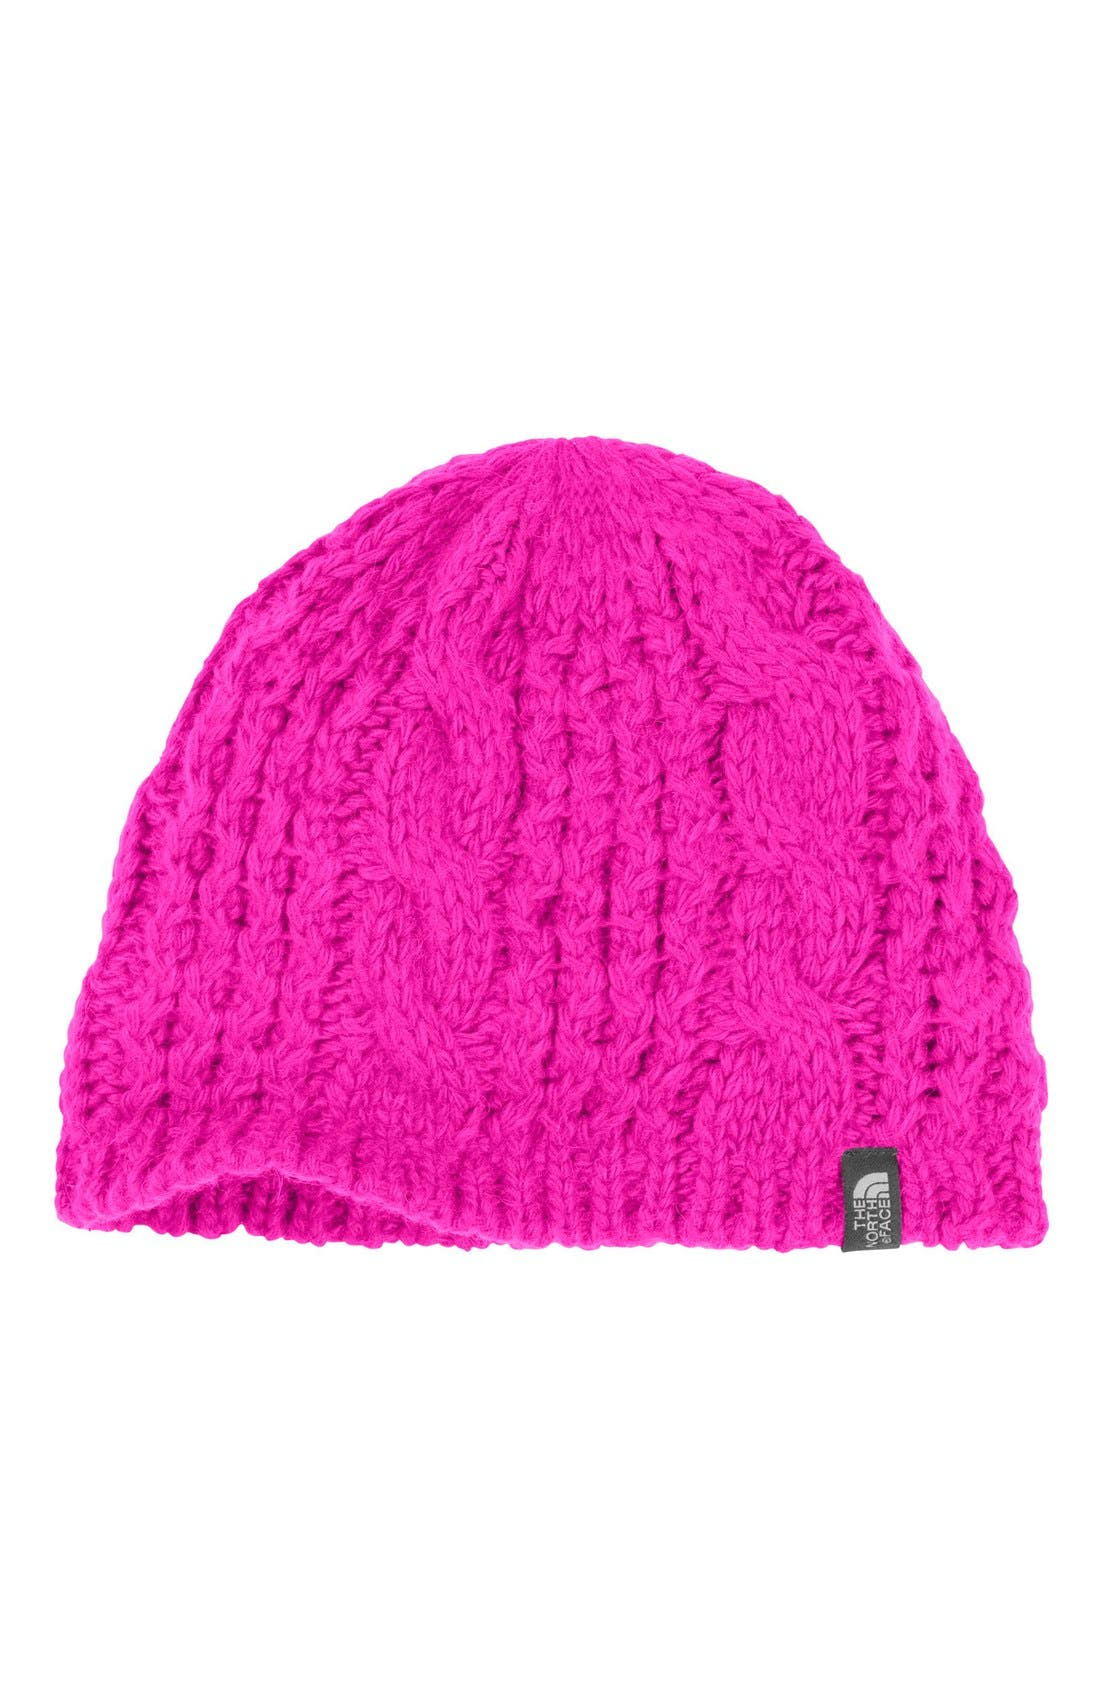 Alternate Image 1 Selected - The North Face 'Minna' Cable Knit Beanie